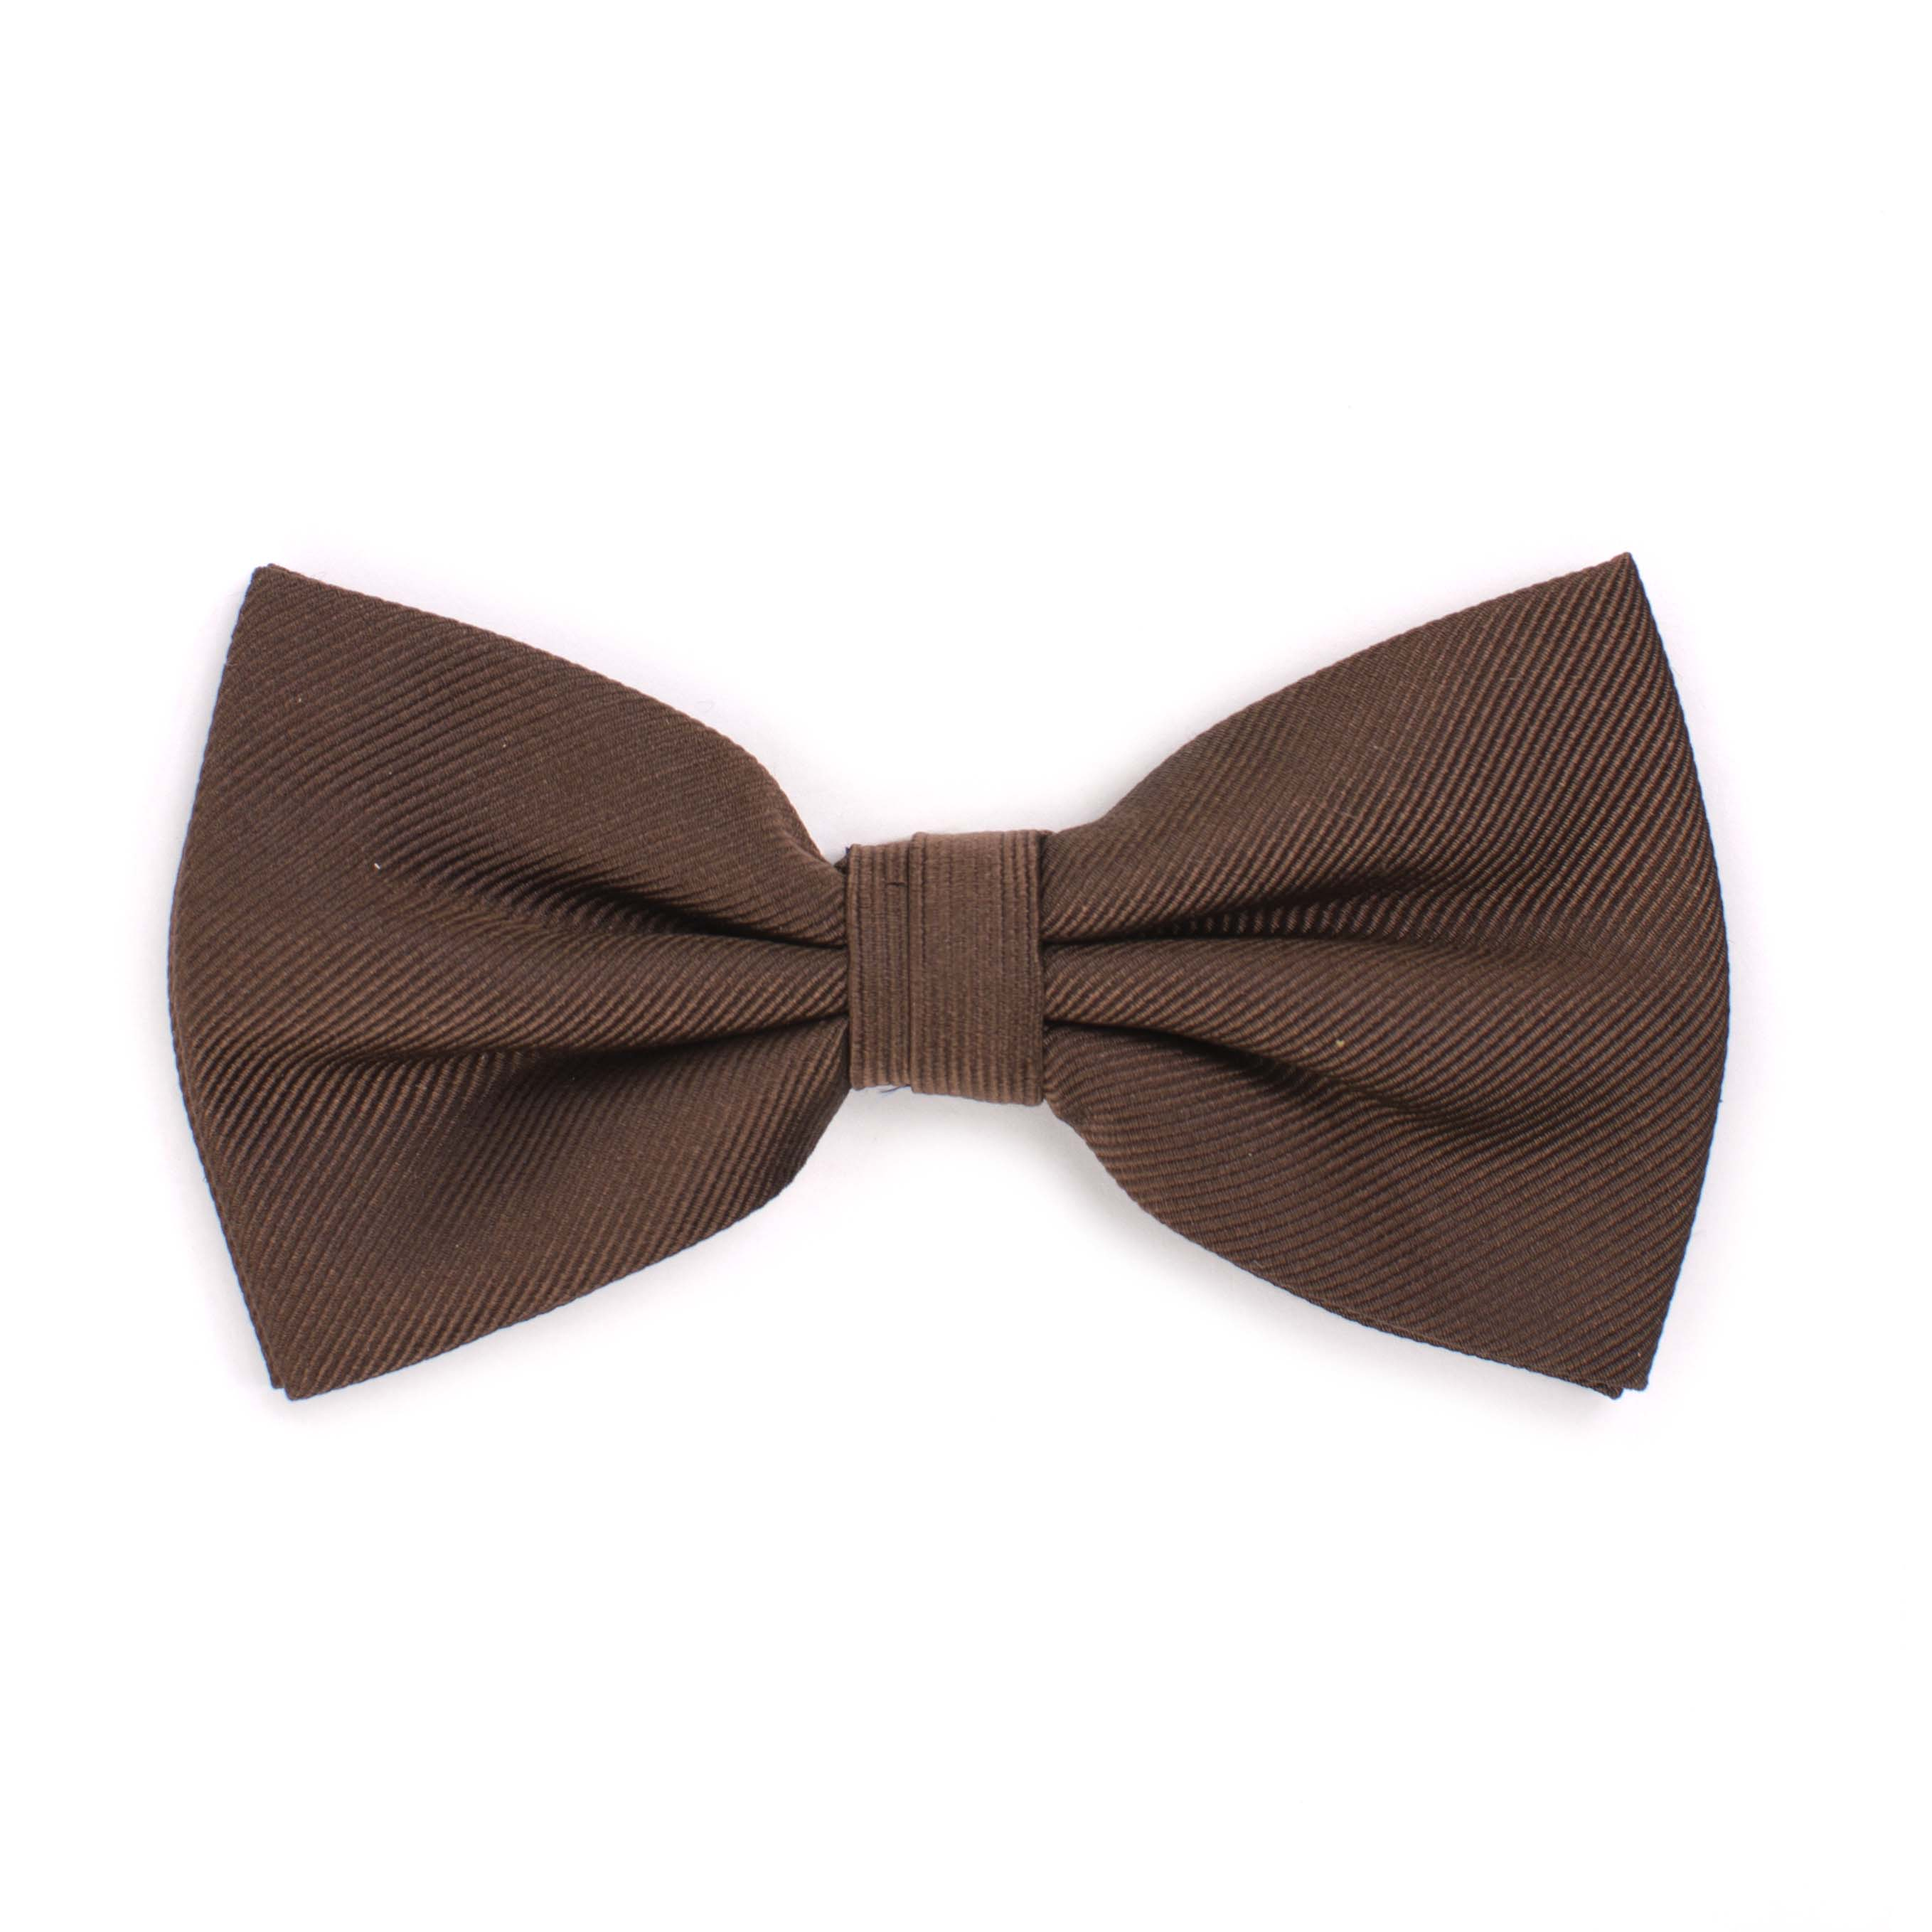 Bow tie classic ribbed brown